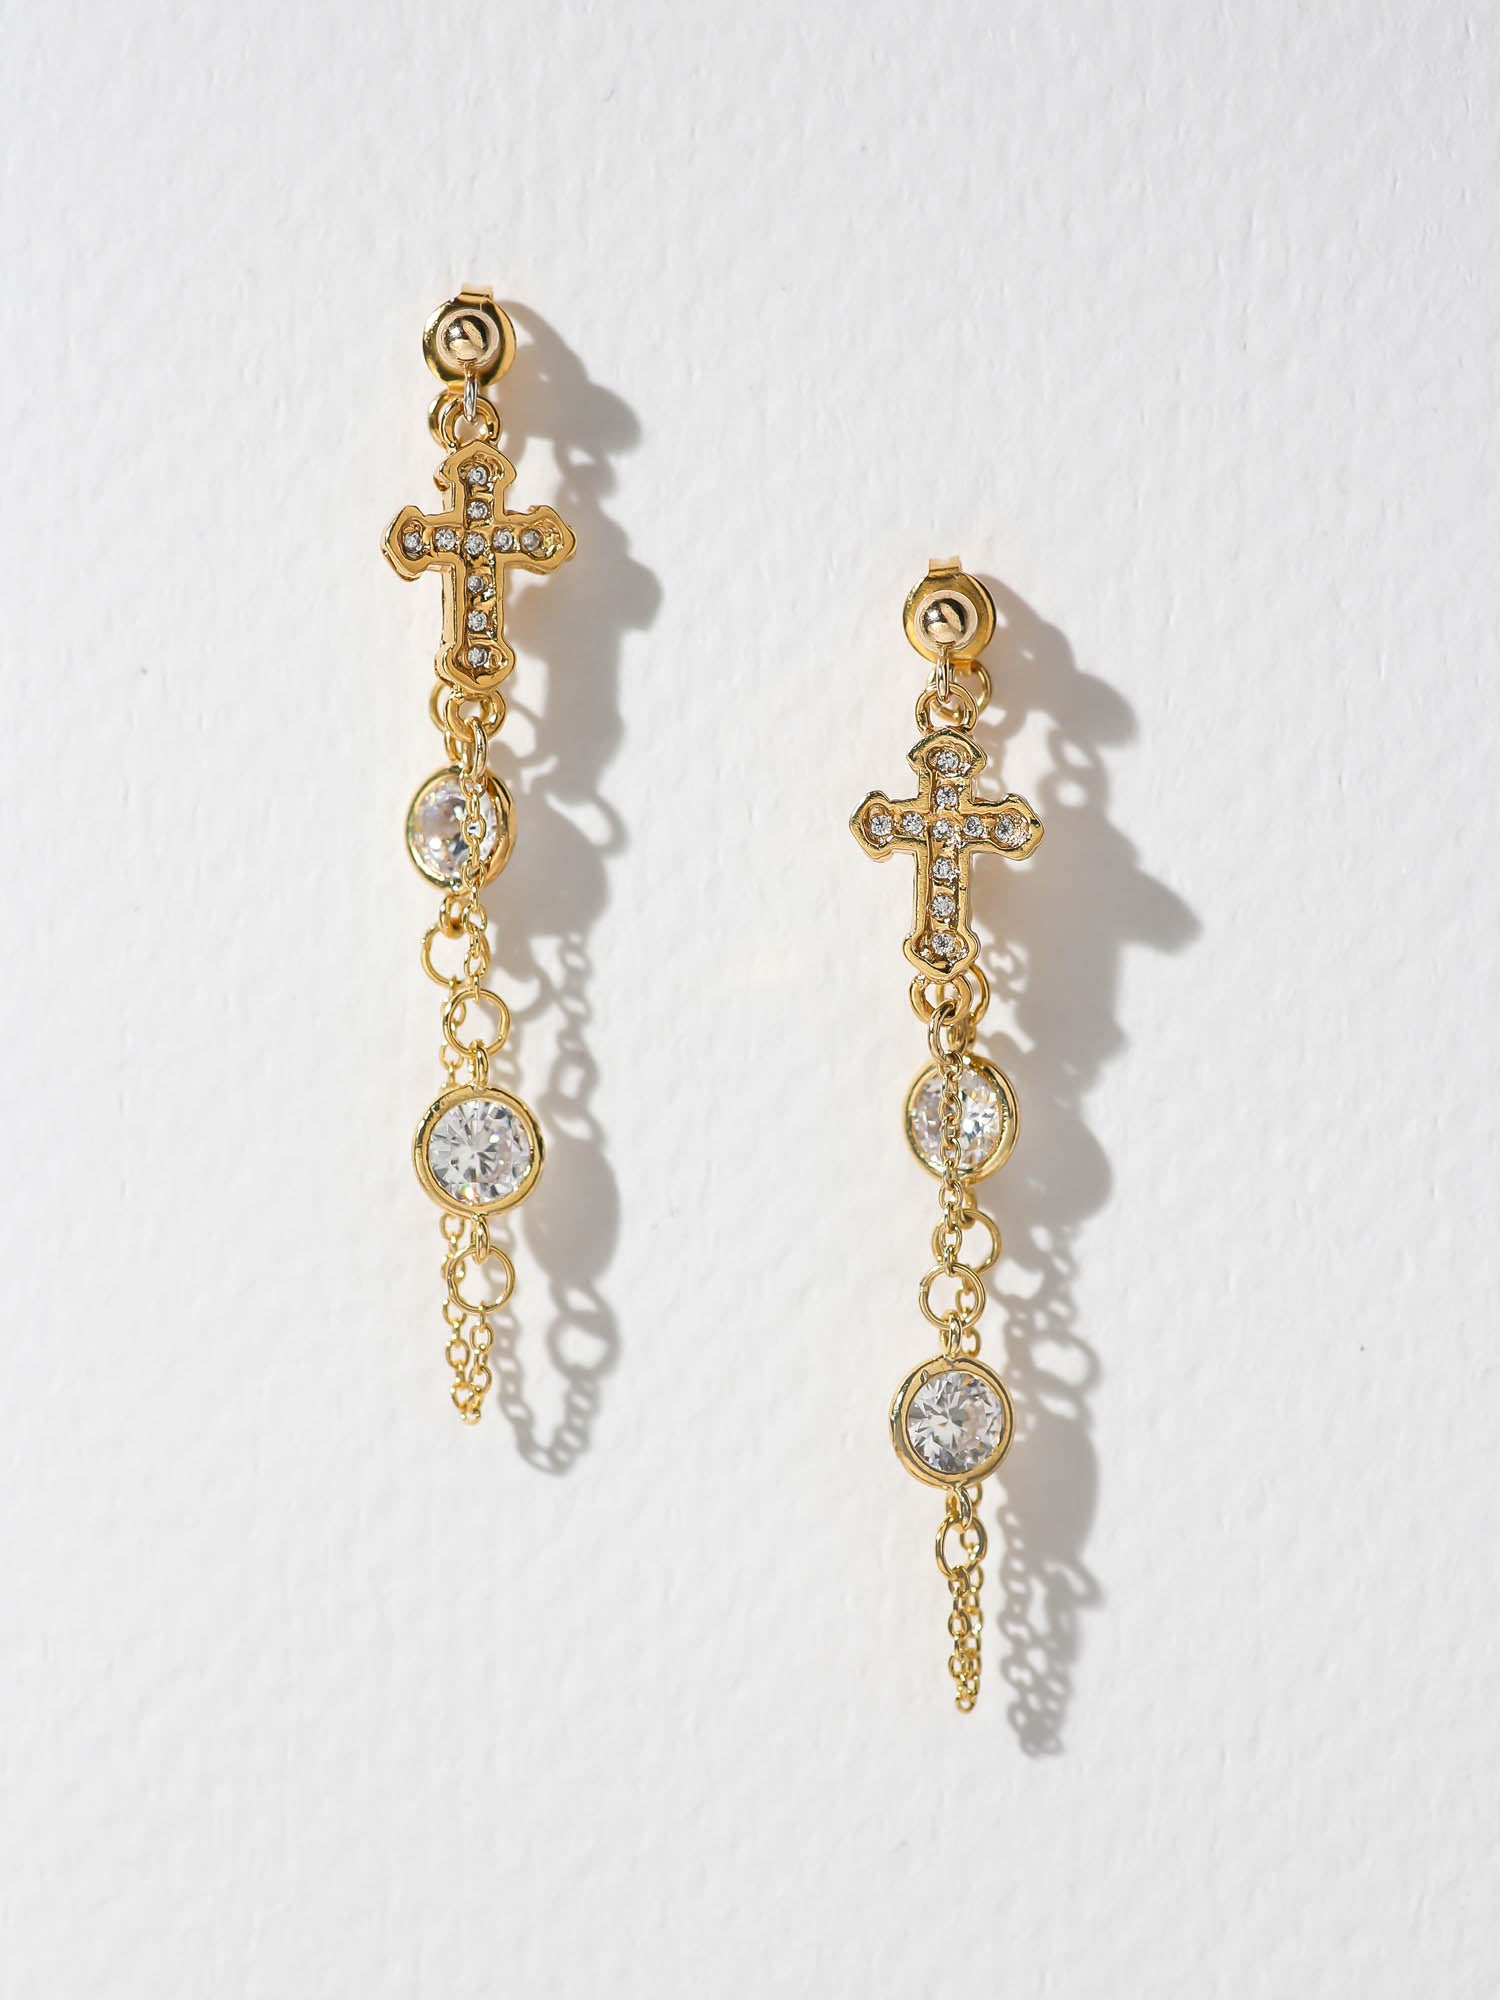 The Unchained Cross Earrings